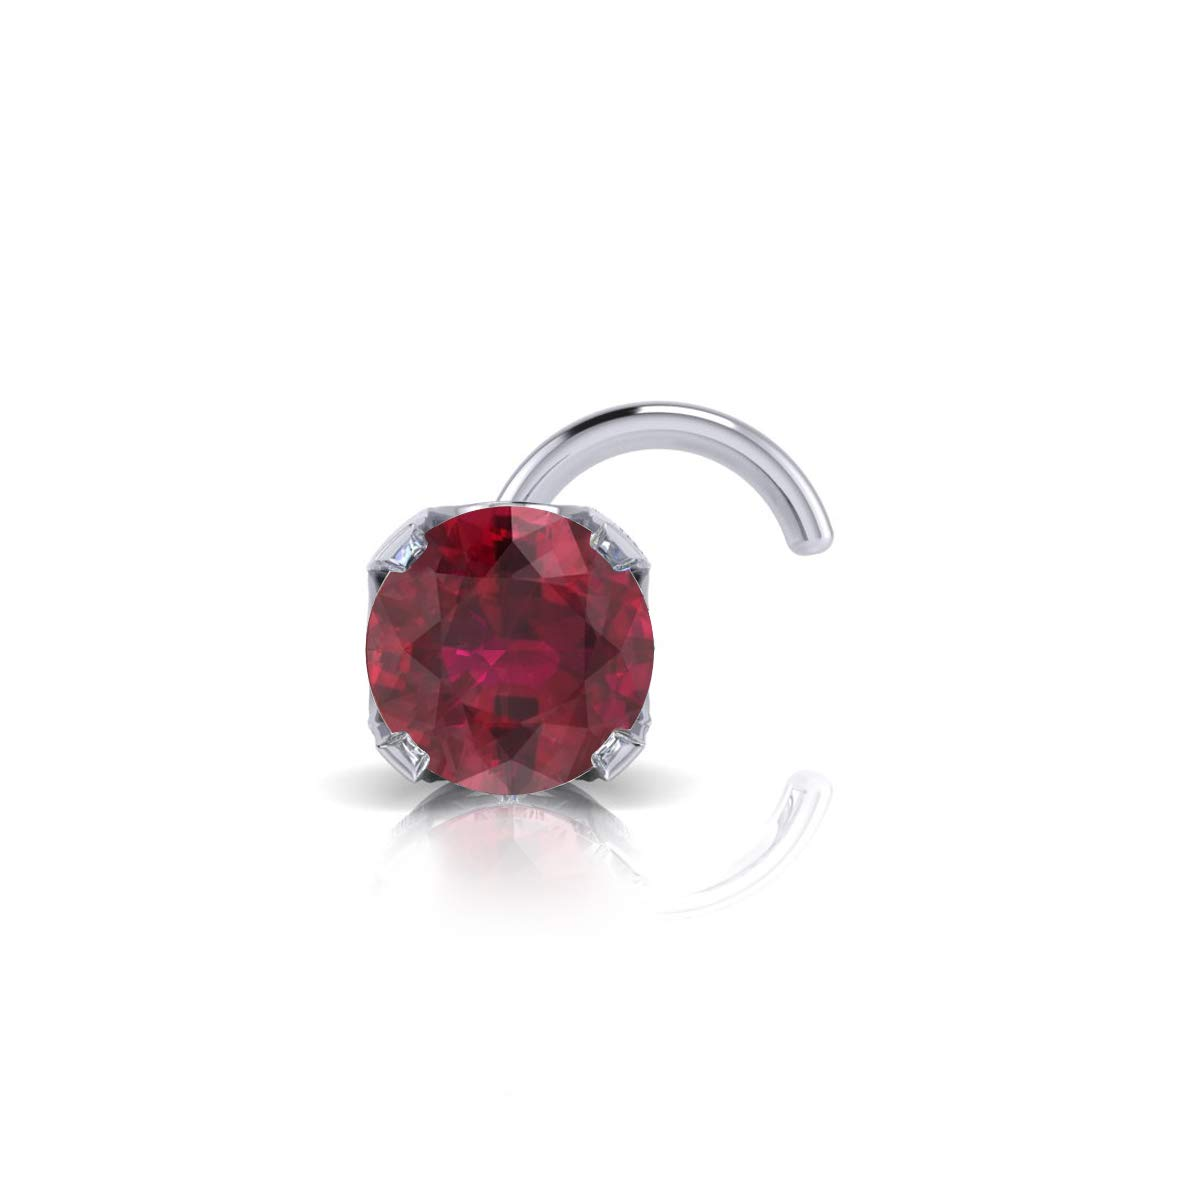 2mm 0.03 Carat Ruby Stud Nose Ring In 14K White Gold